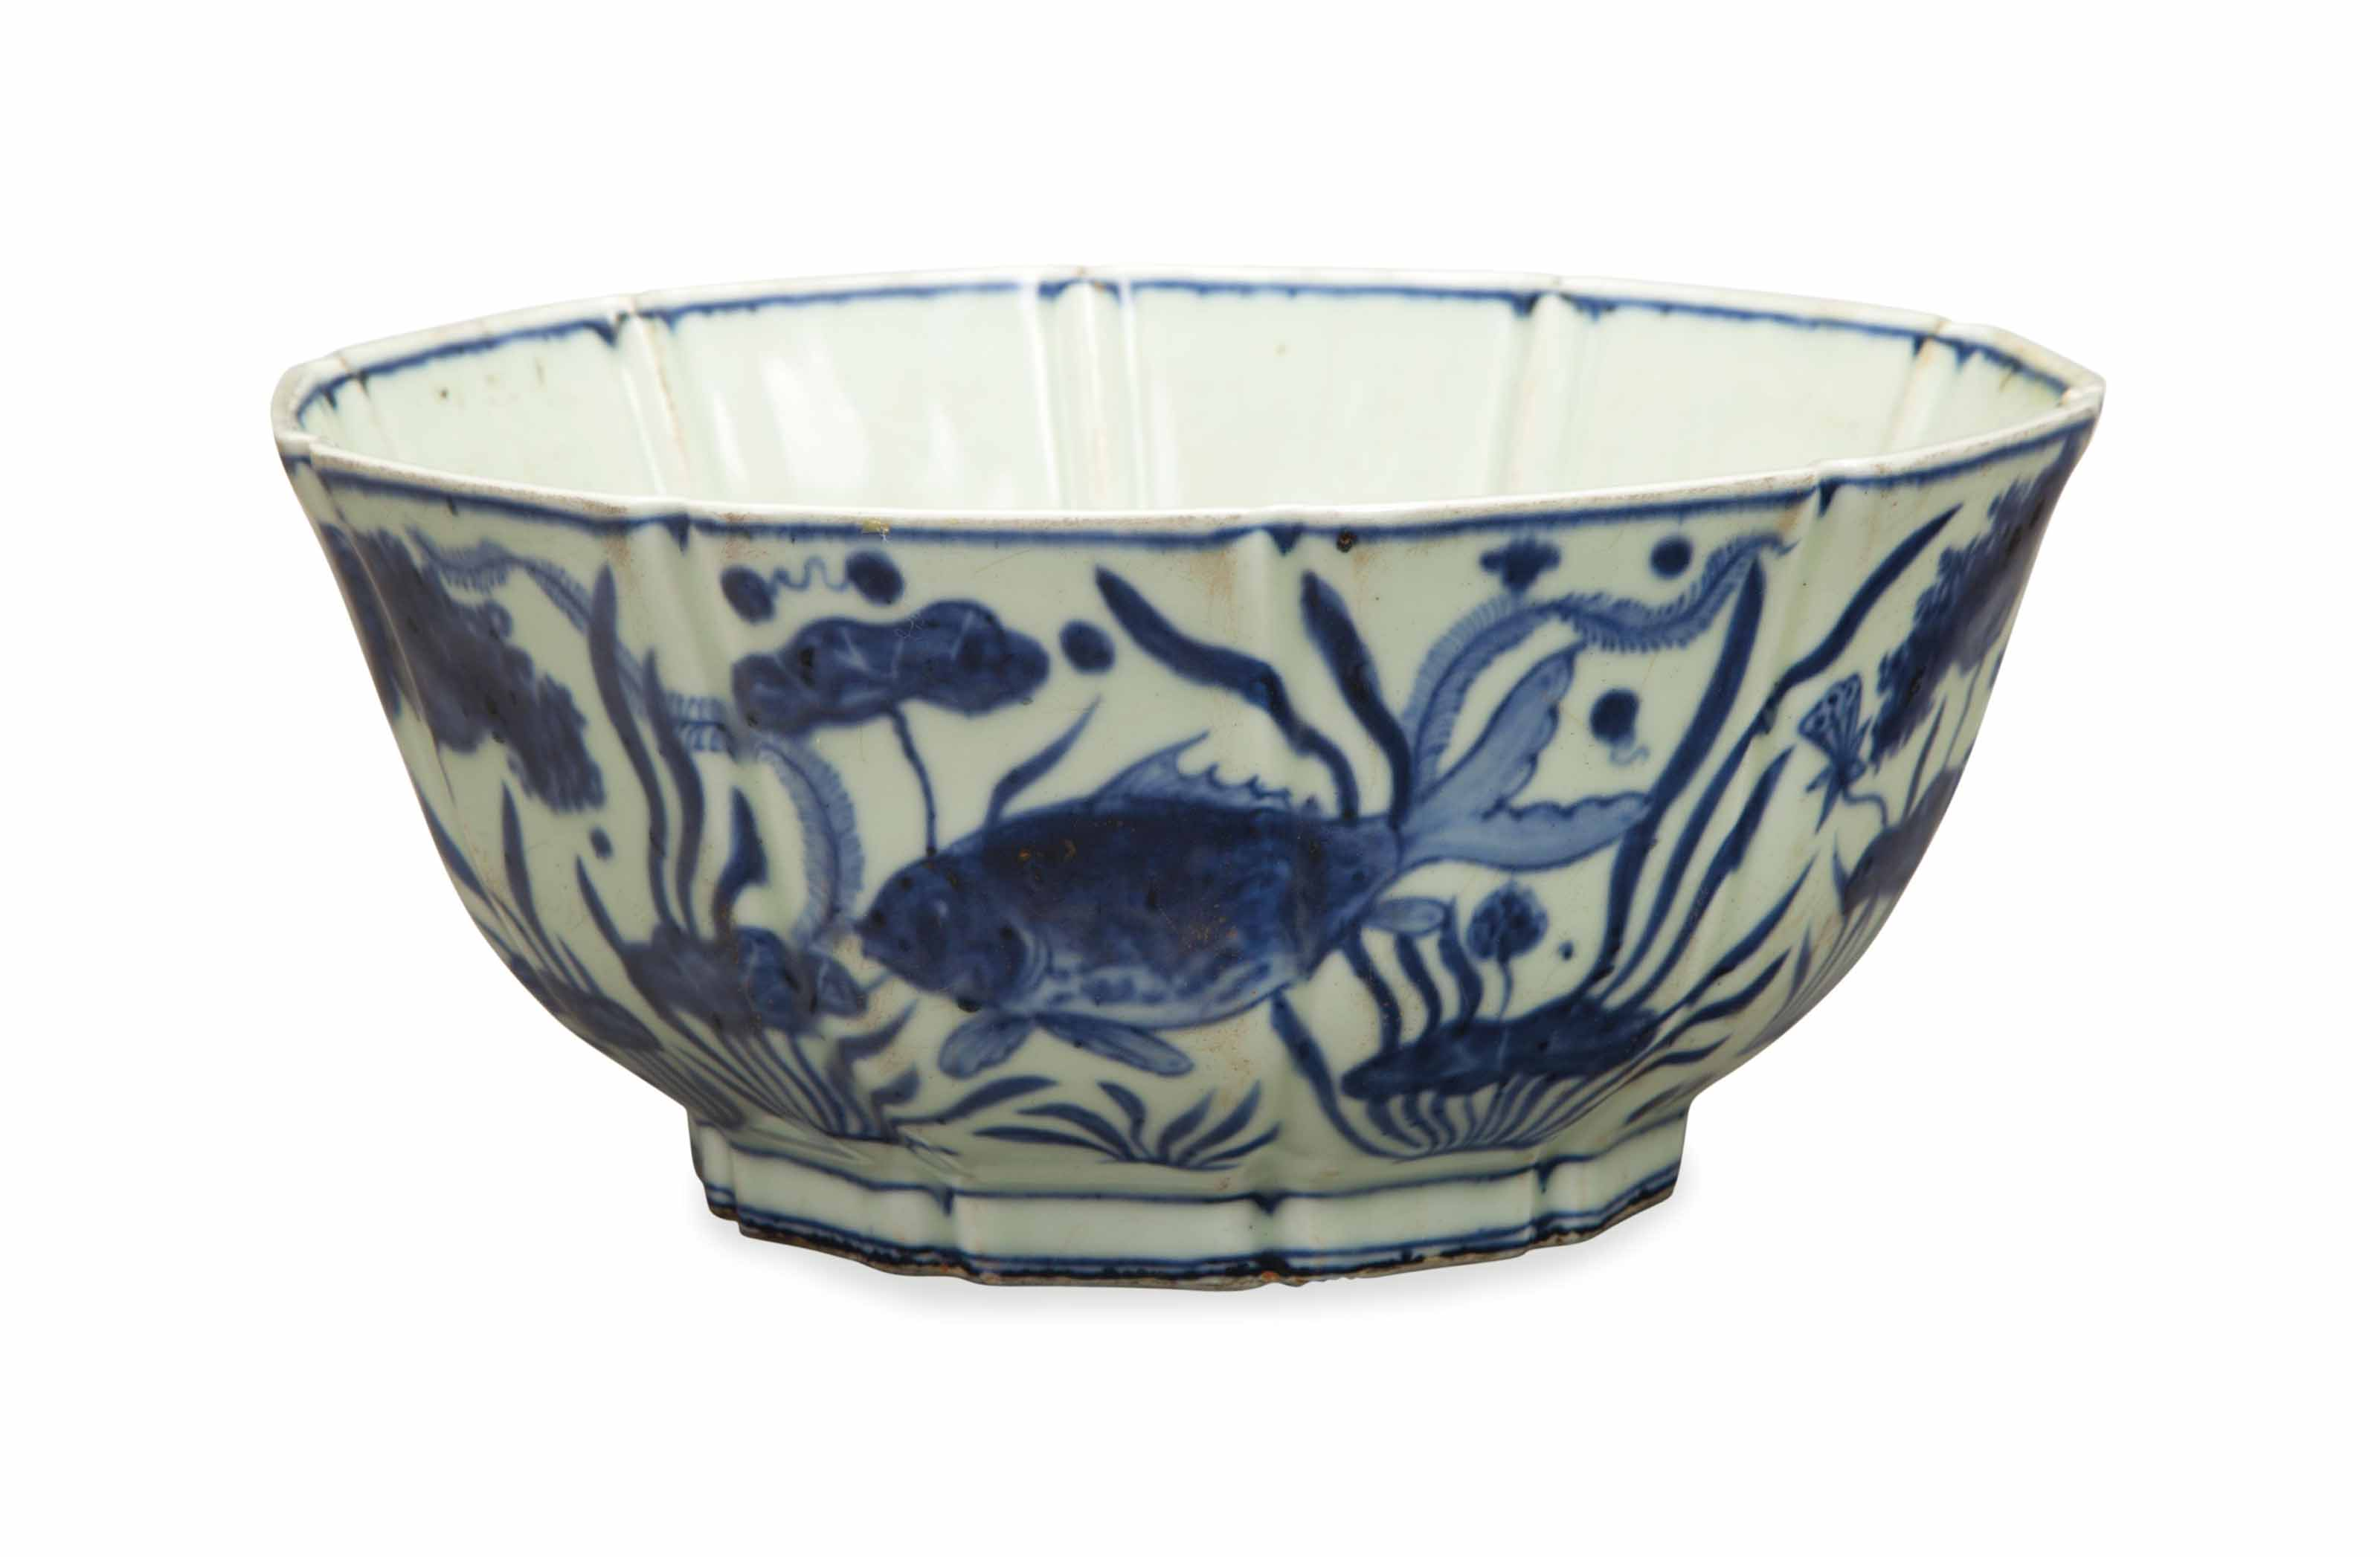 A CHINESE MING-STYLE BLUE AND